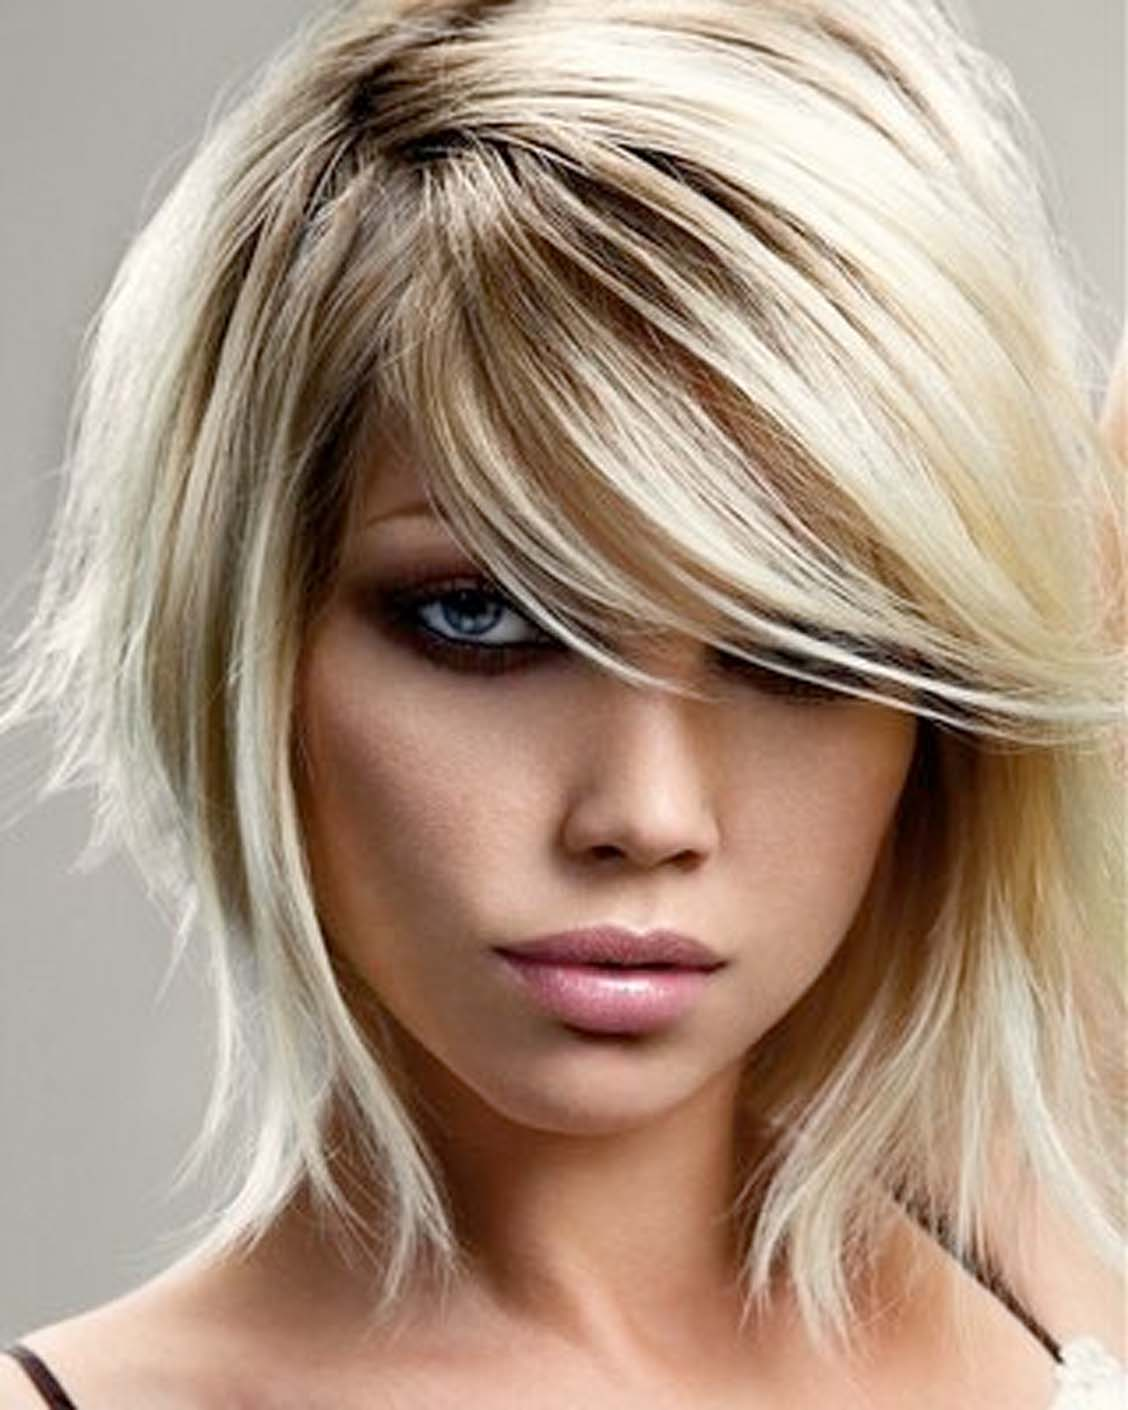 The Charming Short Black Dark Hairstyles With Bangs Digital Imagery